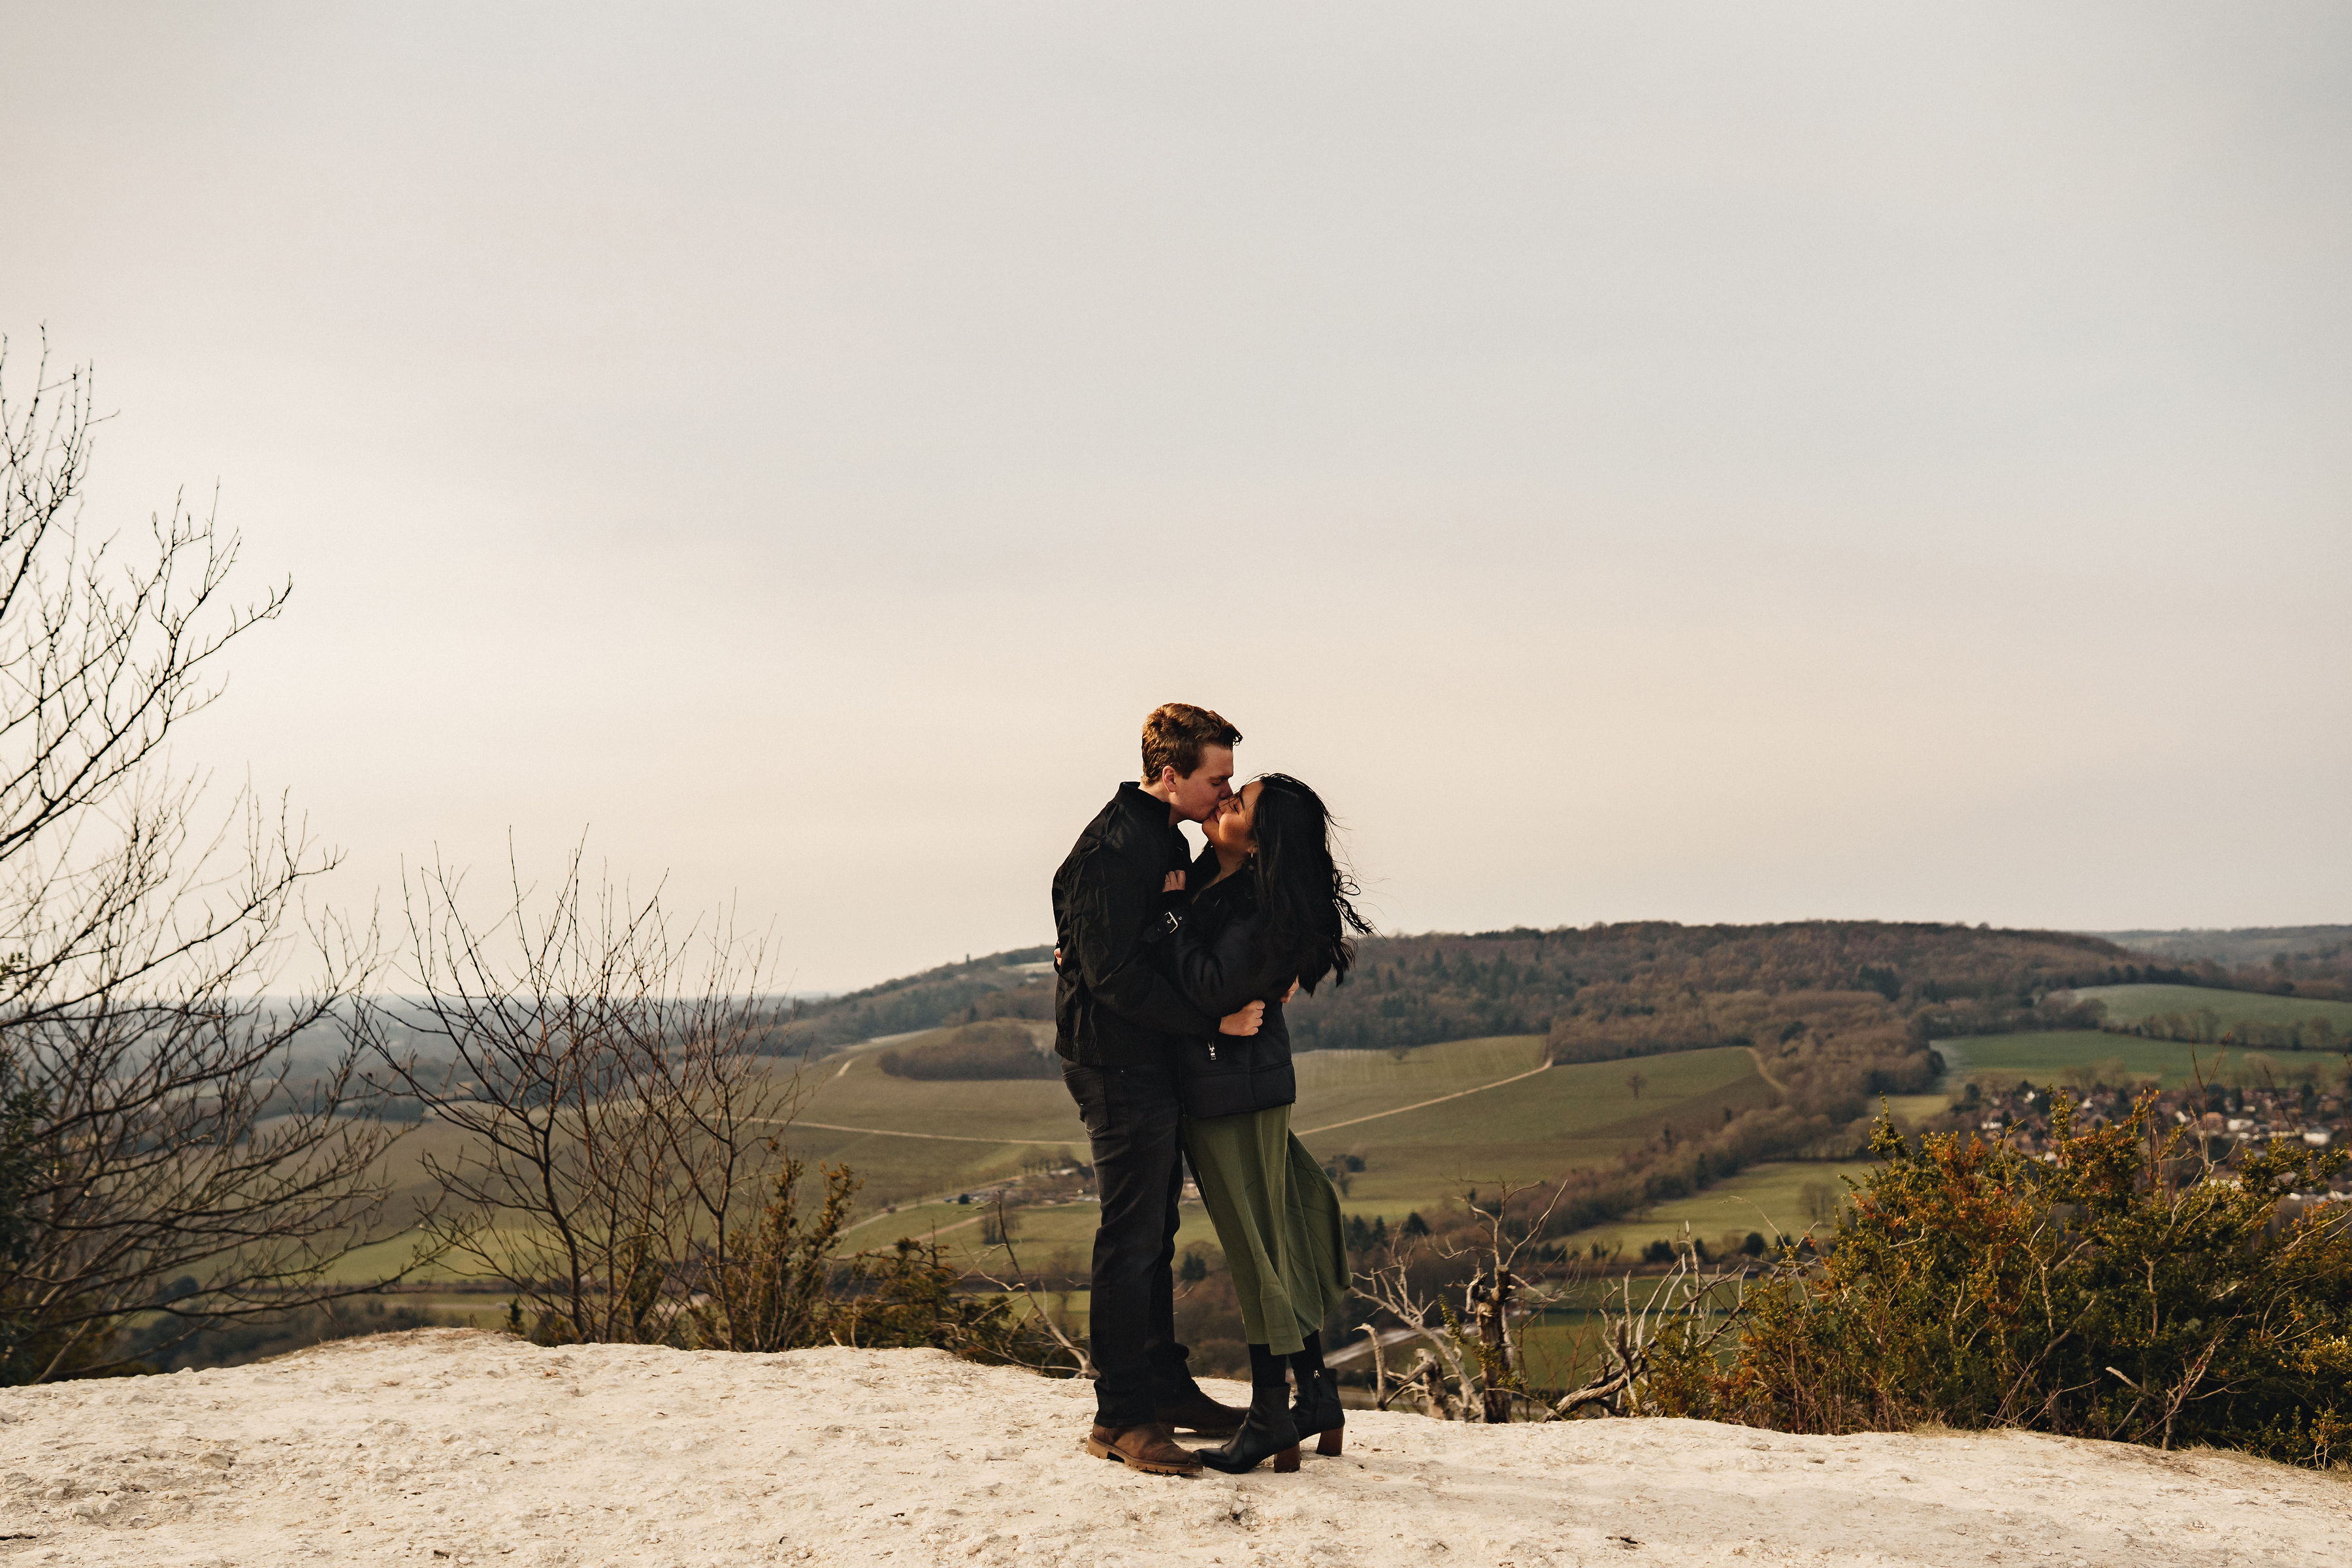 Engagement Shoot at Box Hill Surrey, Shot by The Chamberlins Wedding Photography.